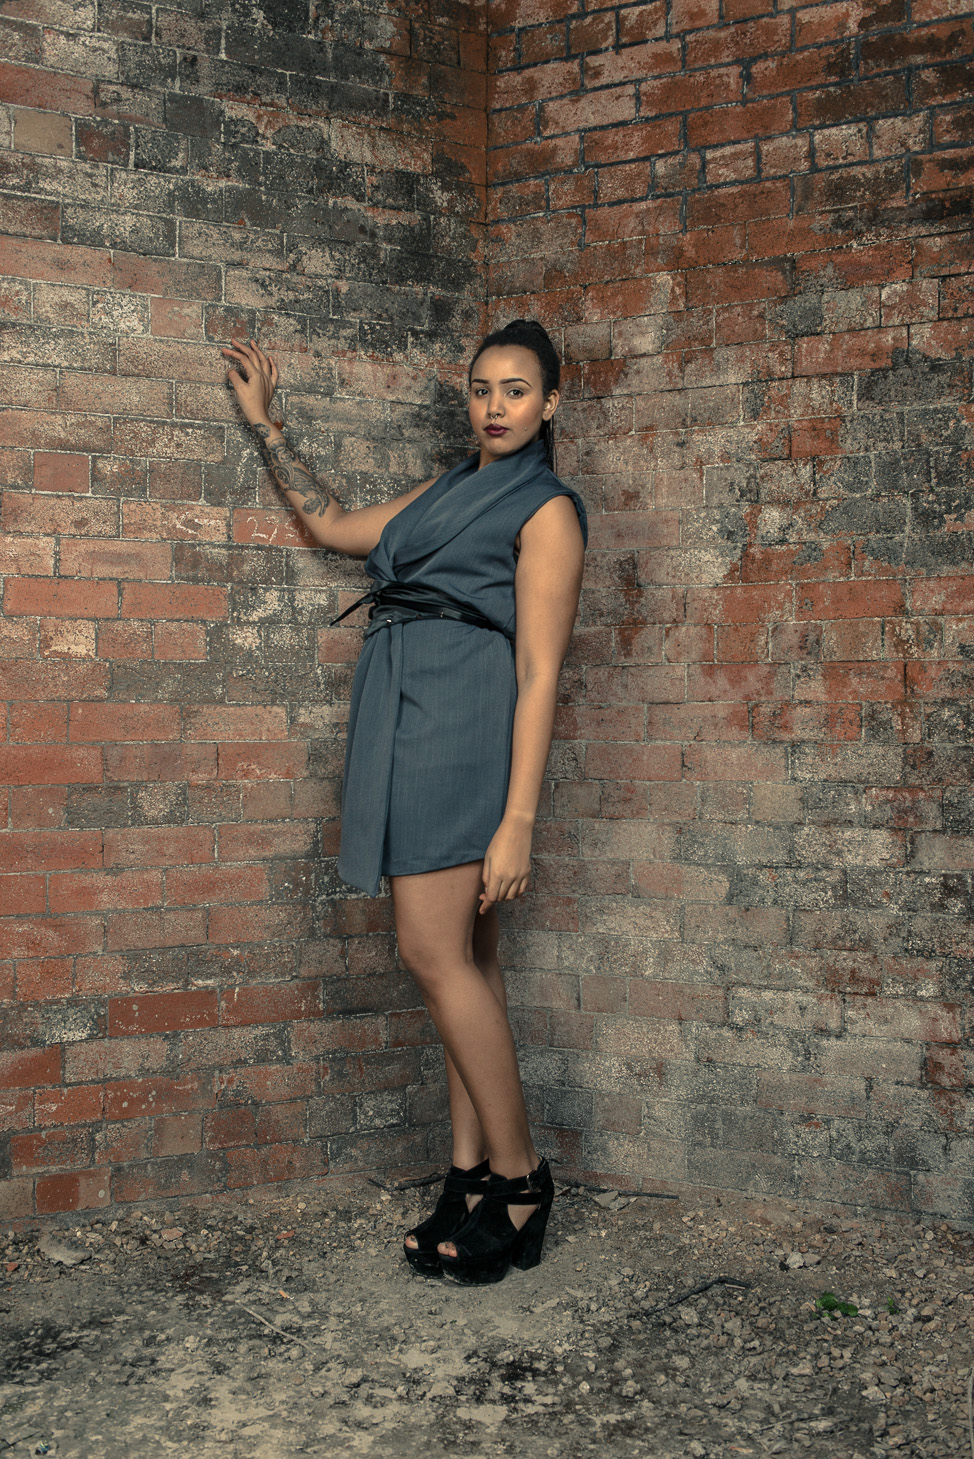 zaramia-ava-zaramiaava-leeds-fashion-designer-ethical-sustainable-tailored-minimalist-dress-jacket-versatile-drape-grey-bodysuit-black-obi-belt-wrap-cowl-styling-womenswear-models-photoshoot-25